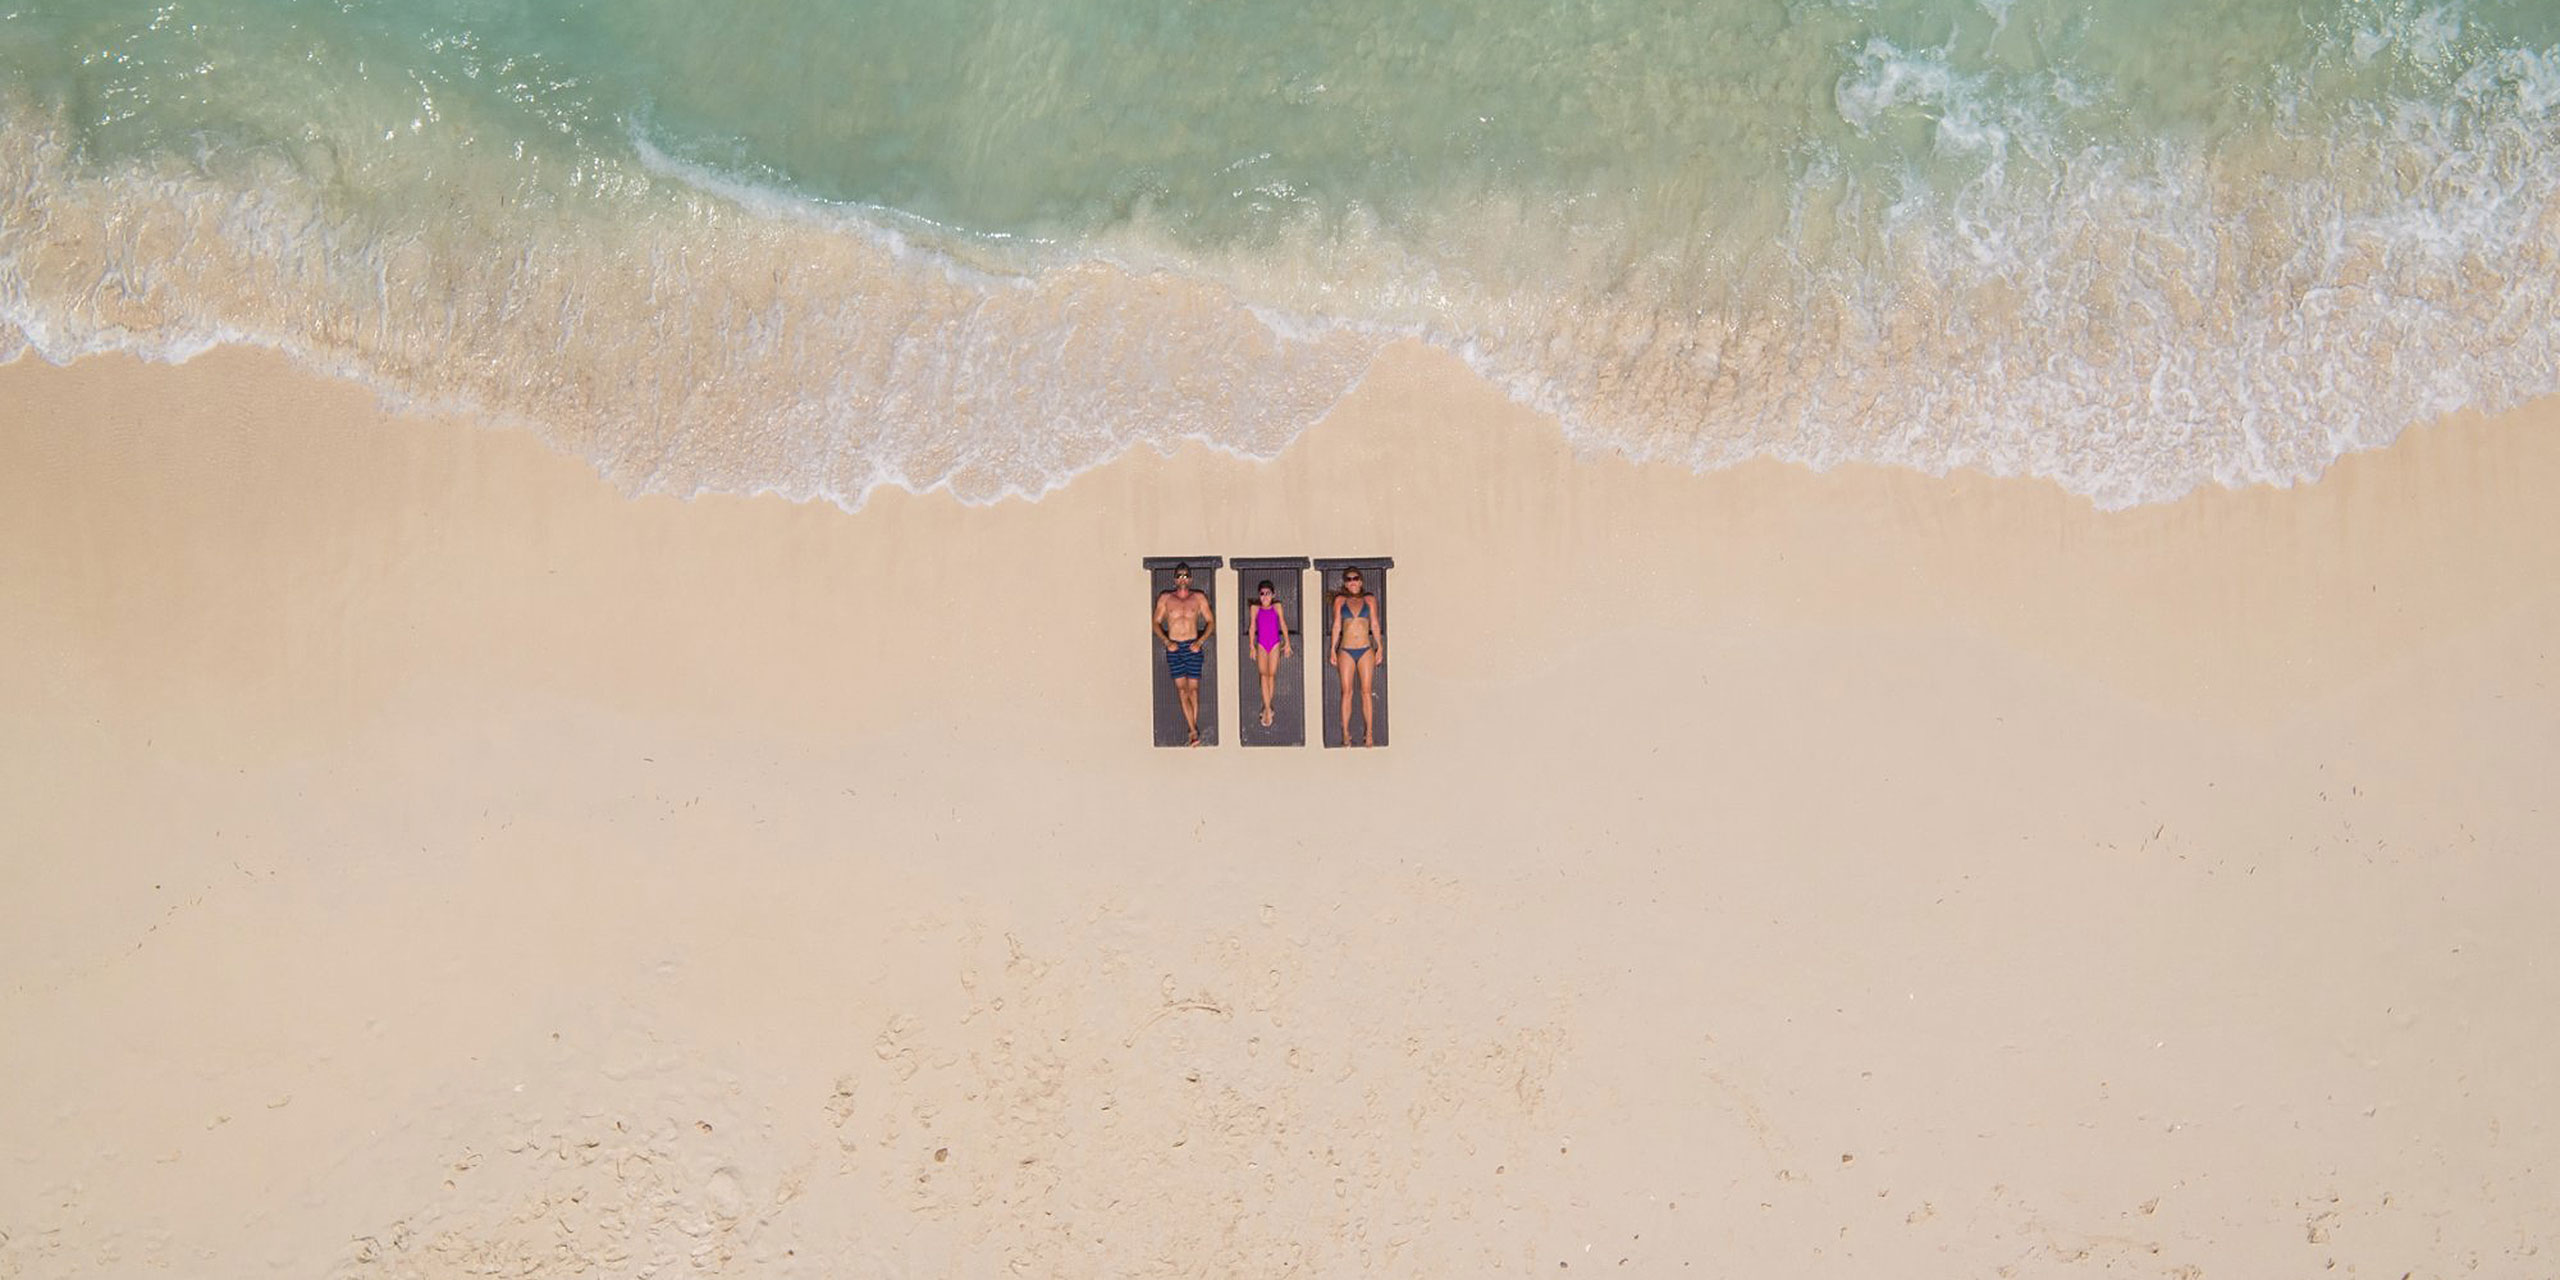 Aerial View of Family on Beach at Resorts World Bimini; Courtesy of Resorts World Bimini